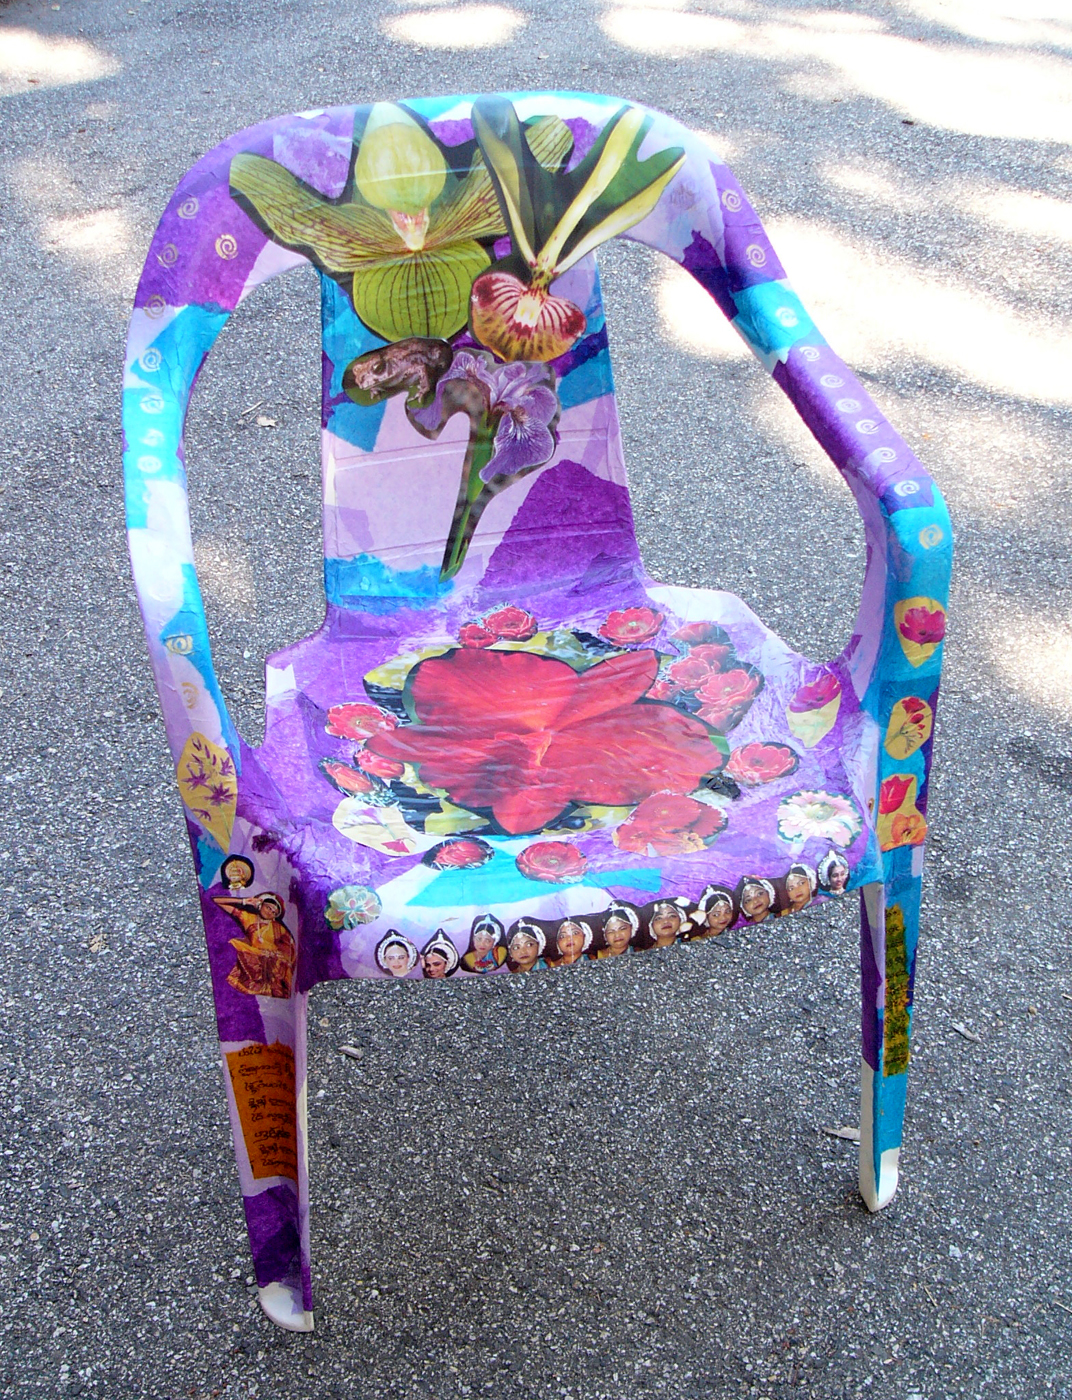 To transform an inexpensive plastic chair local artist Linda Levy teaches decoupaging. & The passionate maker: Project: Repainting a kitchen chair